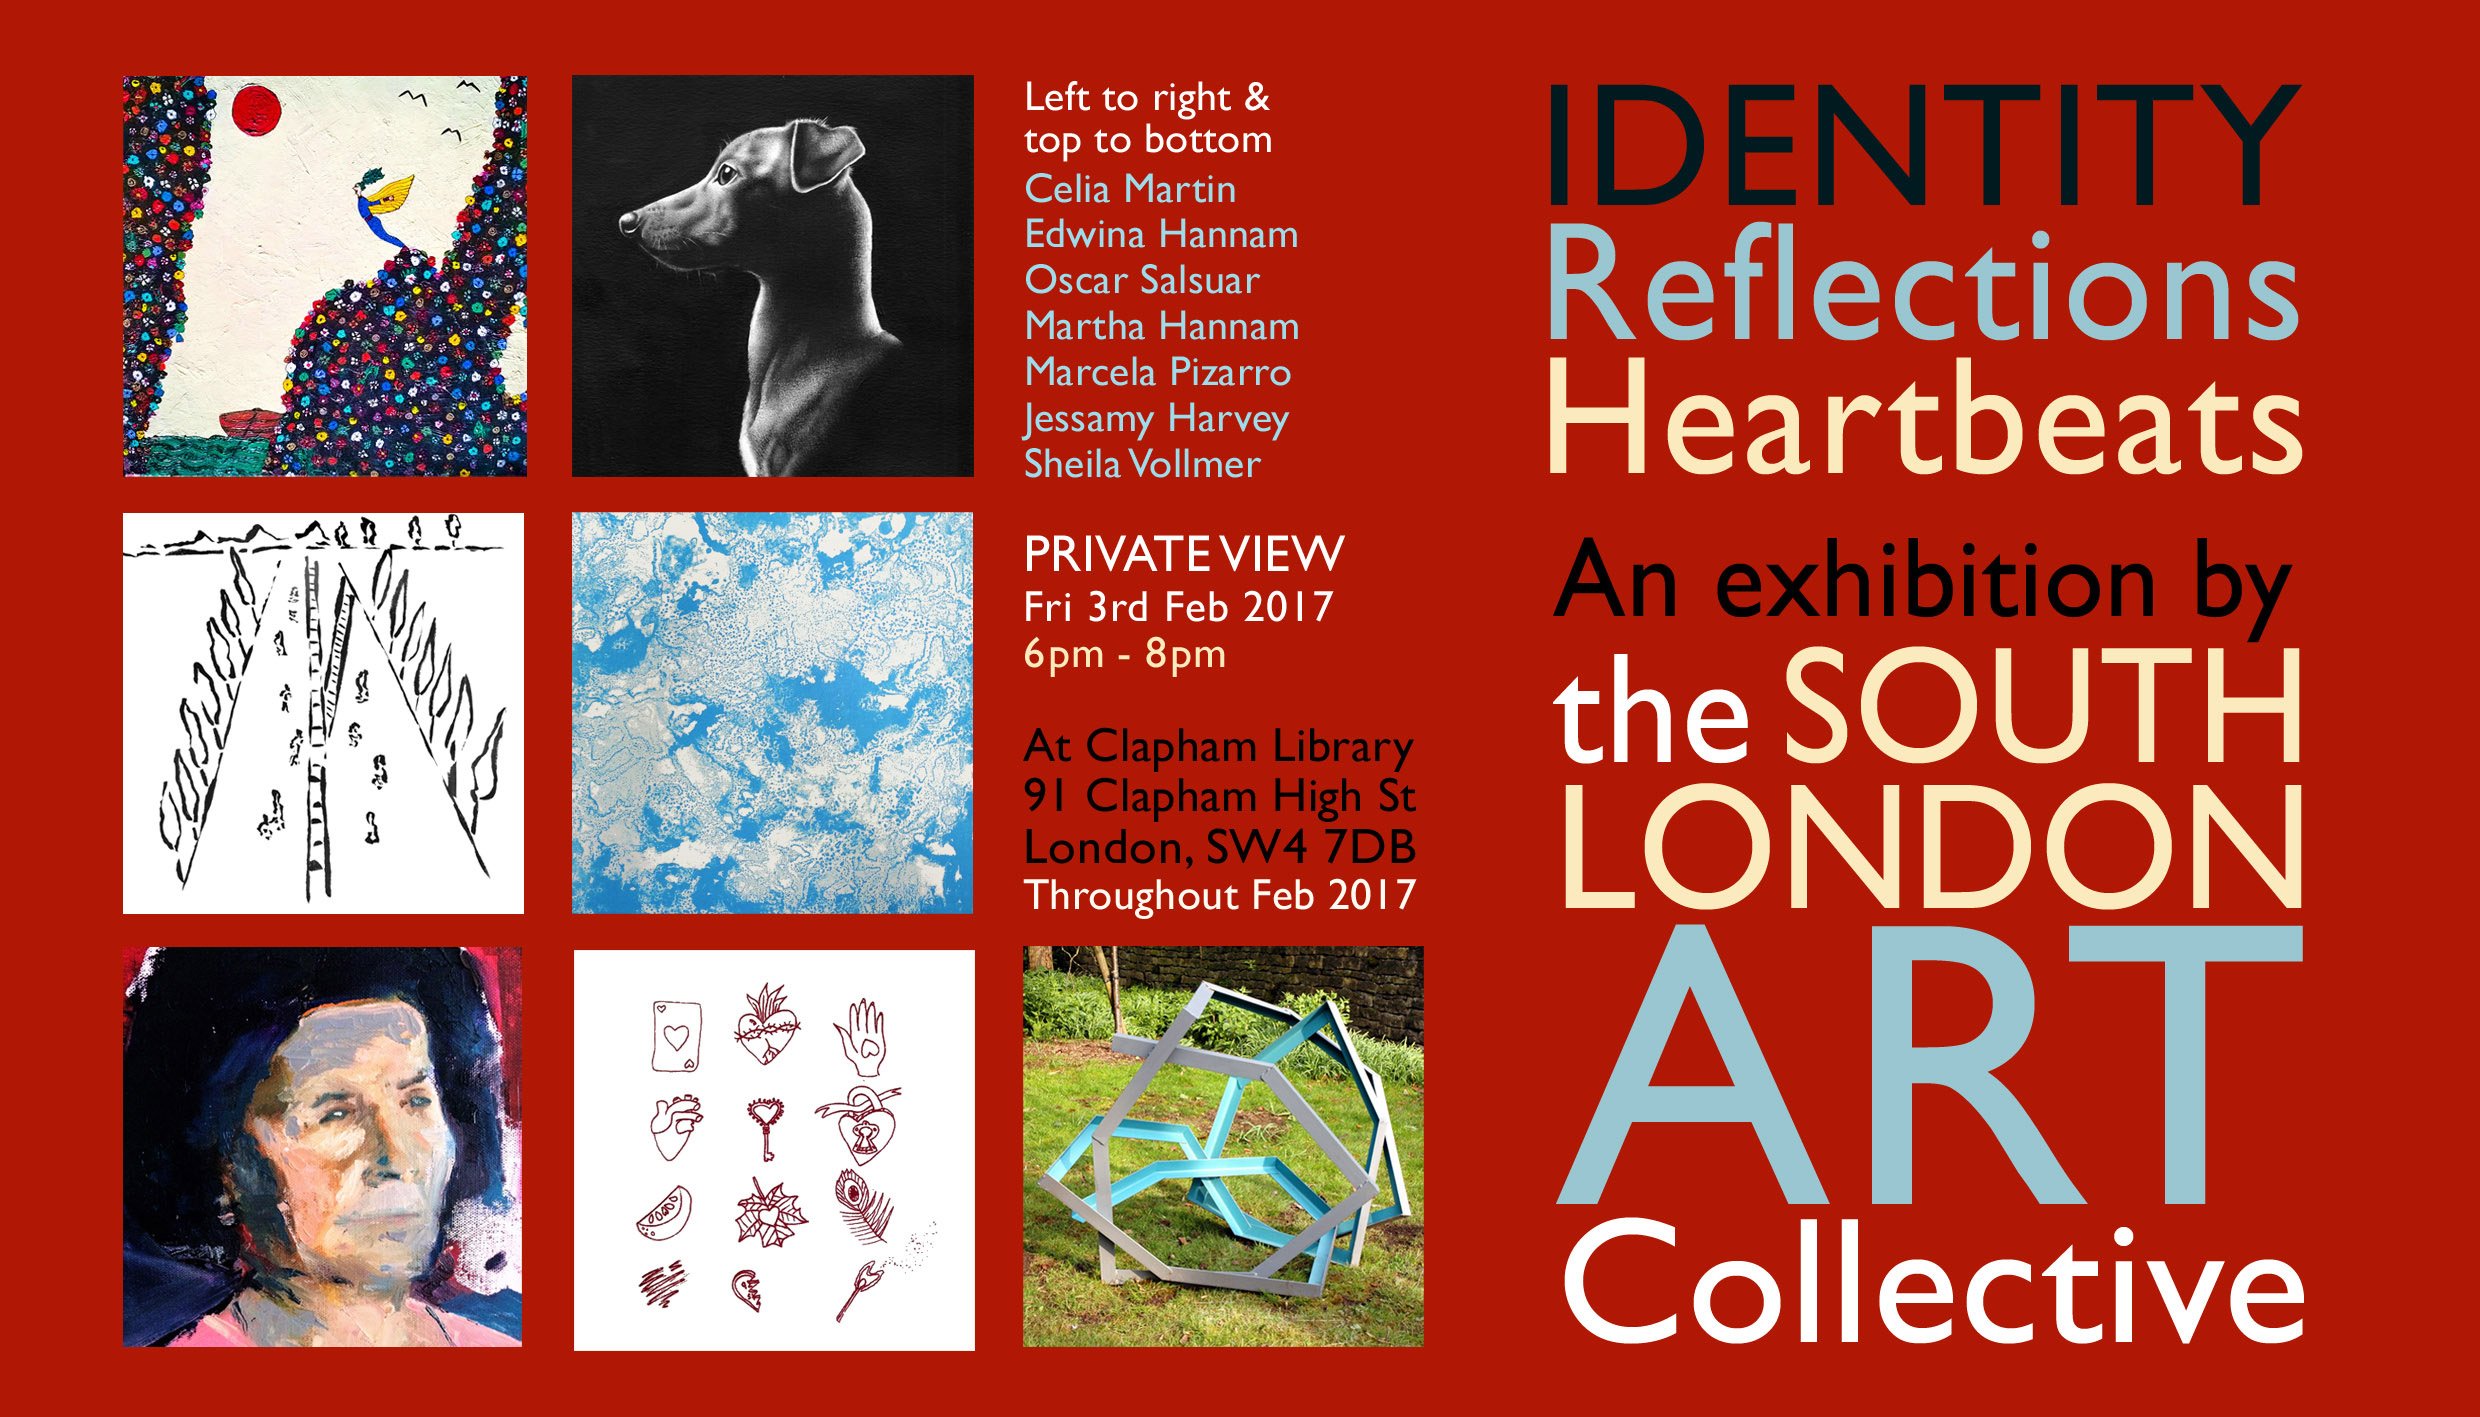 Identity, Reflections, Heartbeats - An exhibition by the South London Art Collective.